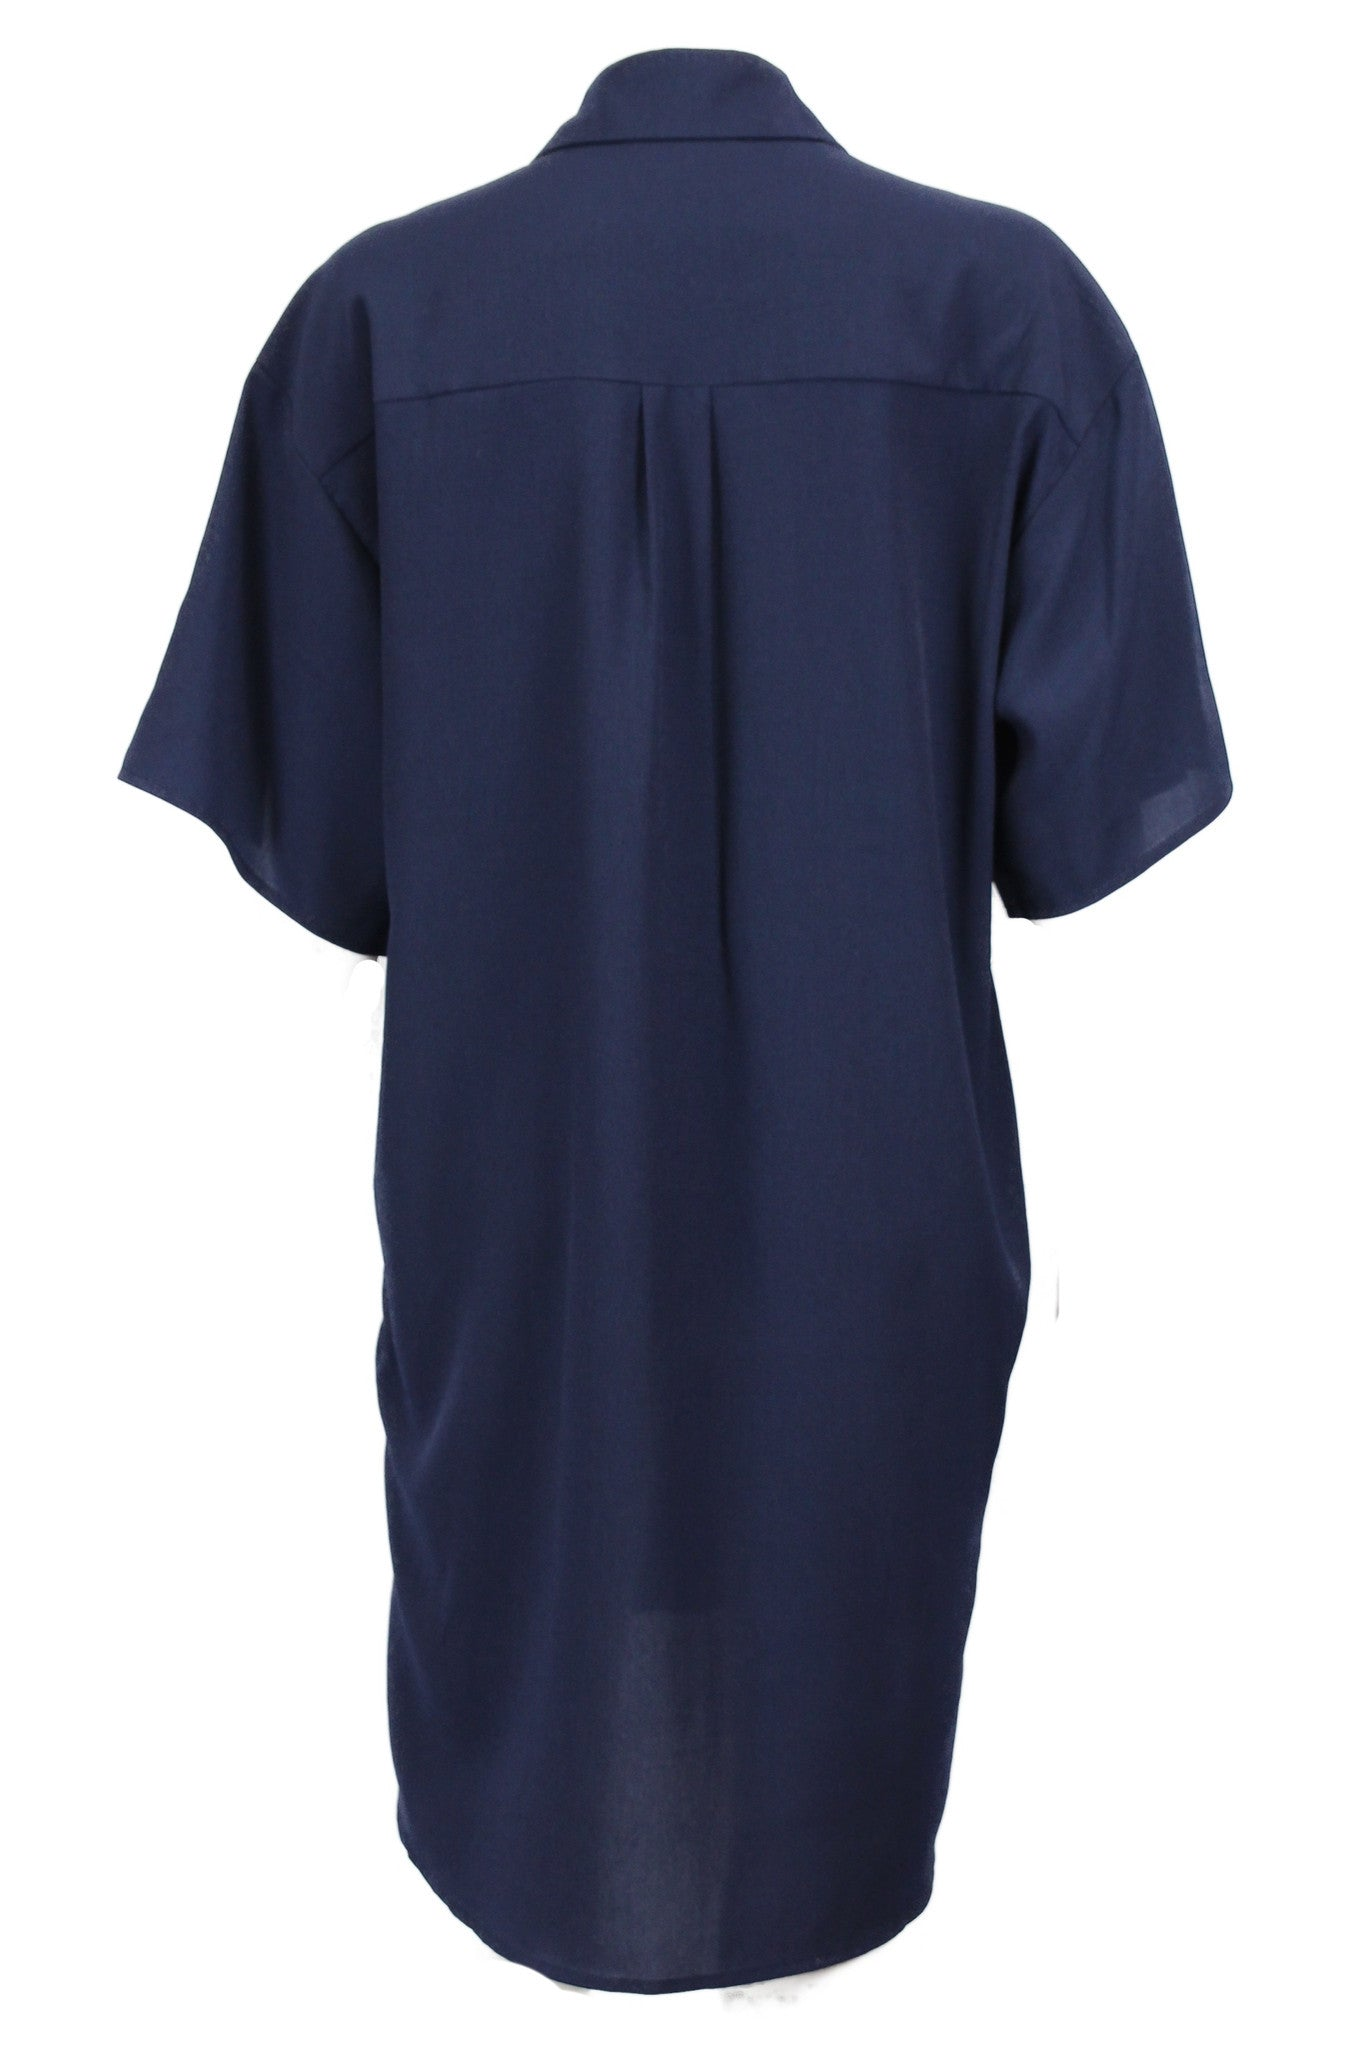 Prep School Half Sleeve Button Down Shirt Dress - Navy